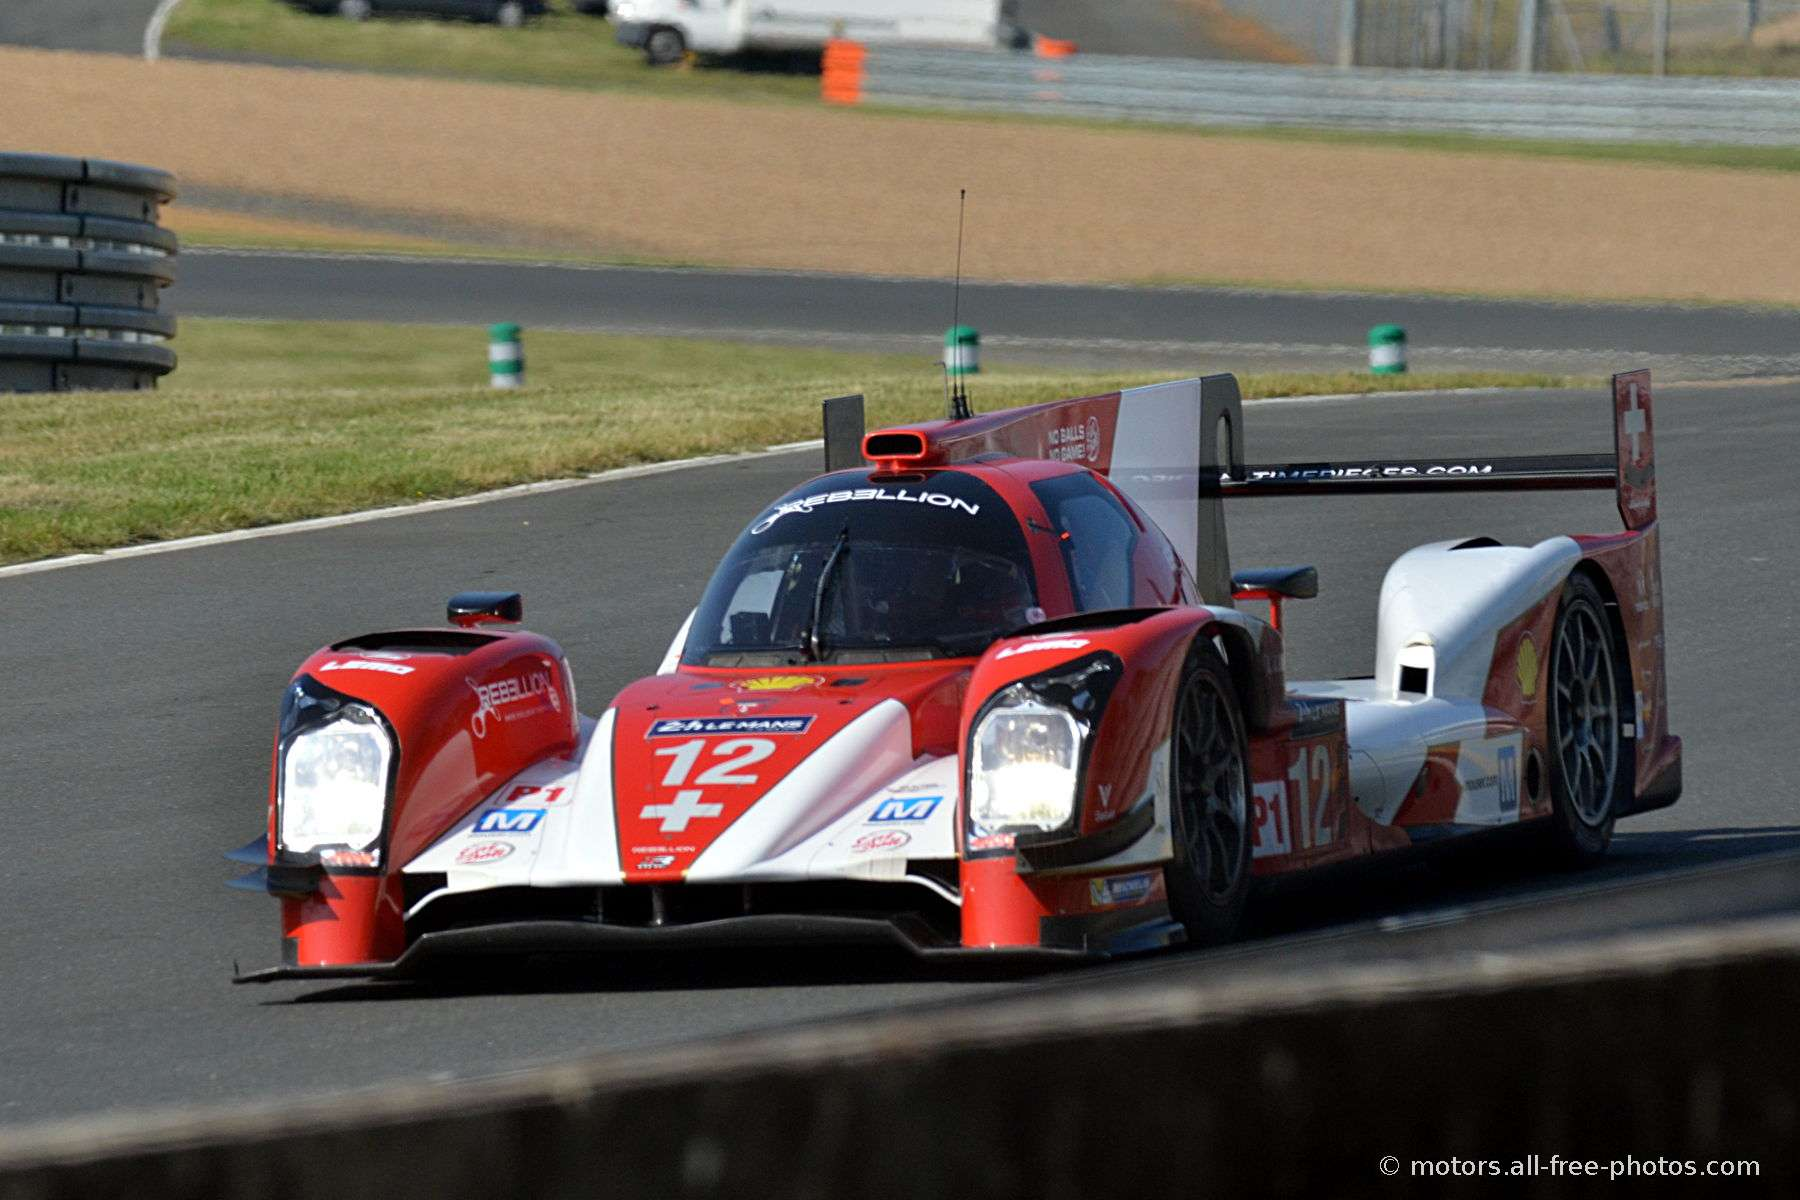 Rebellion-Toyota R-One - Team Rebellion Racing